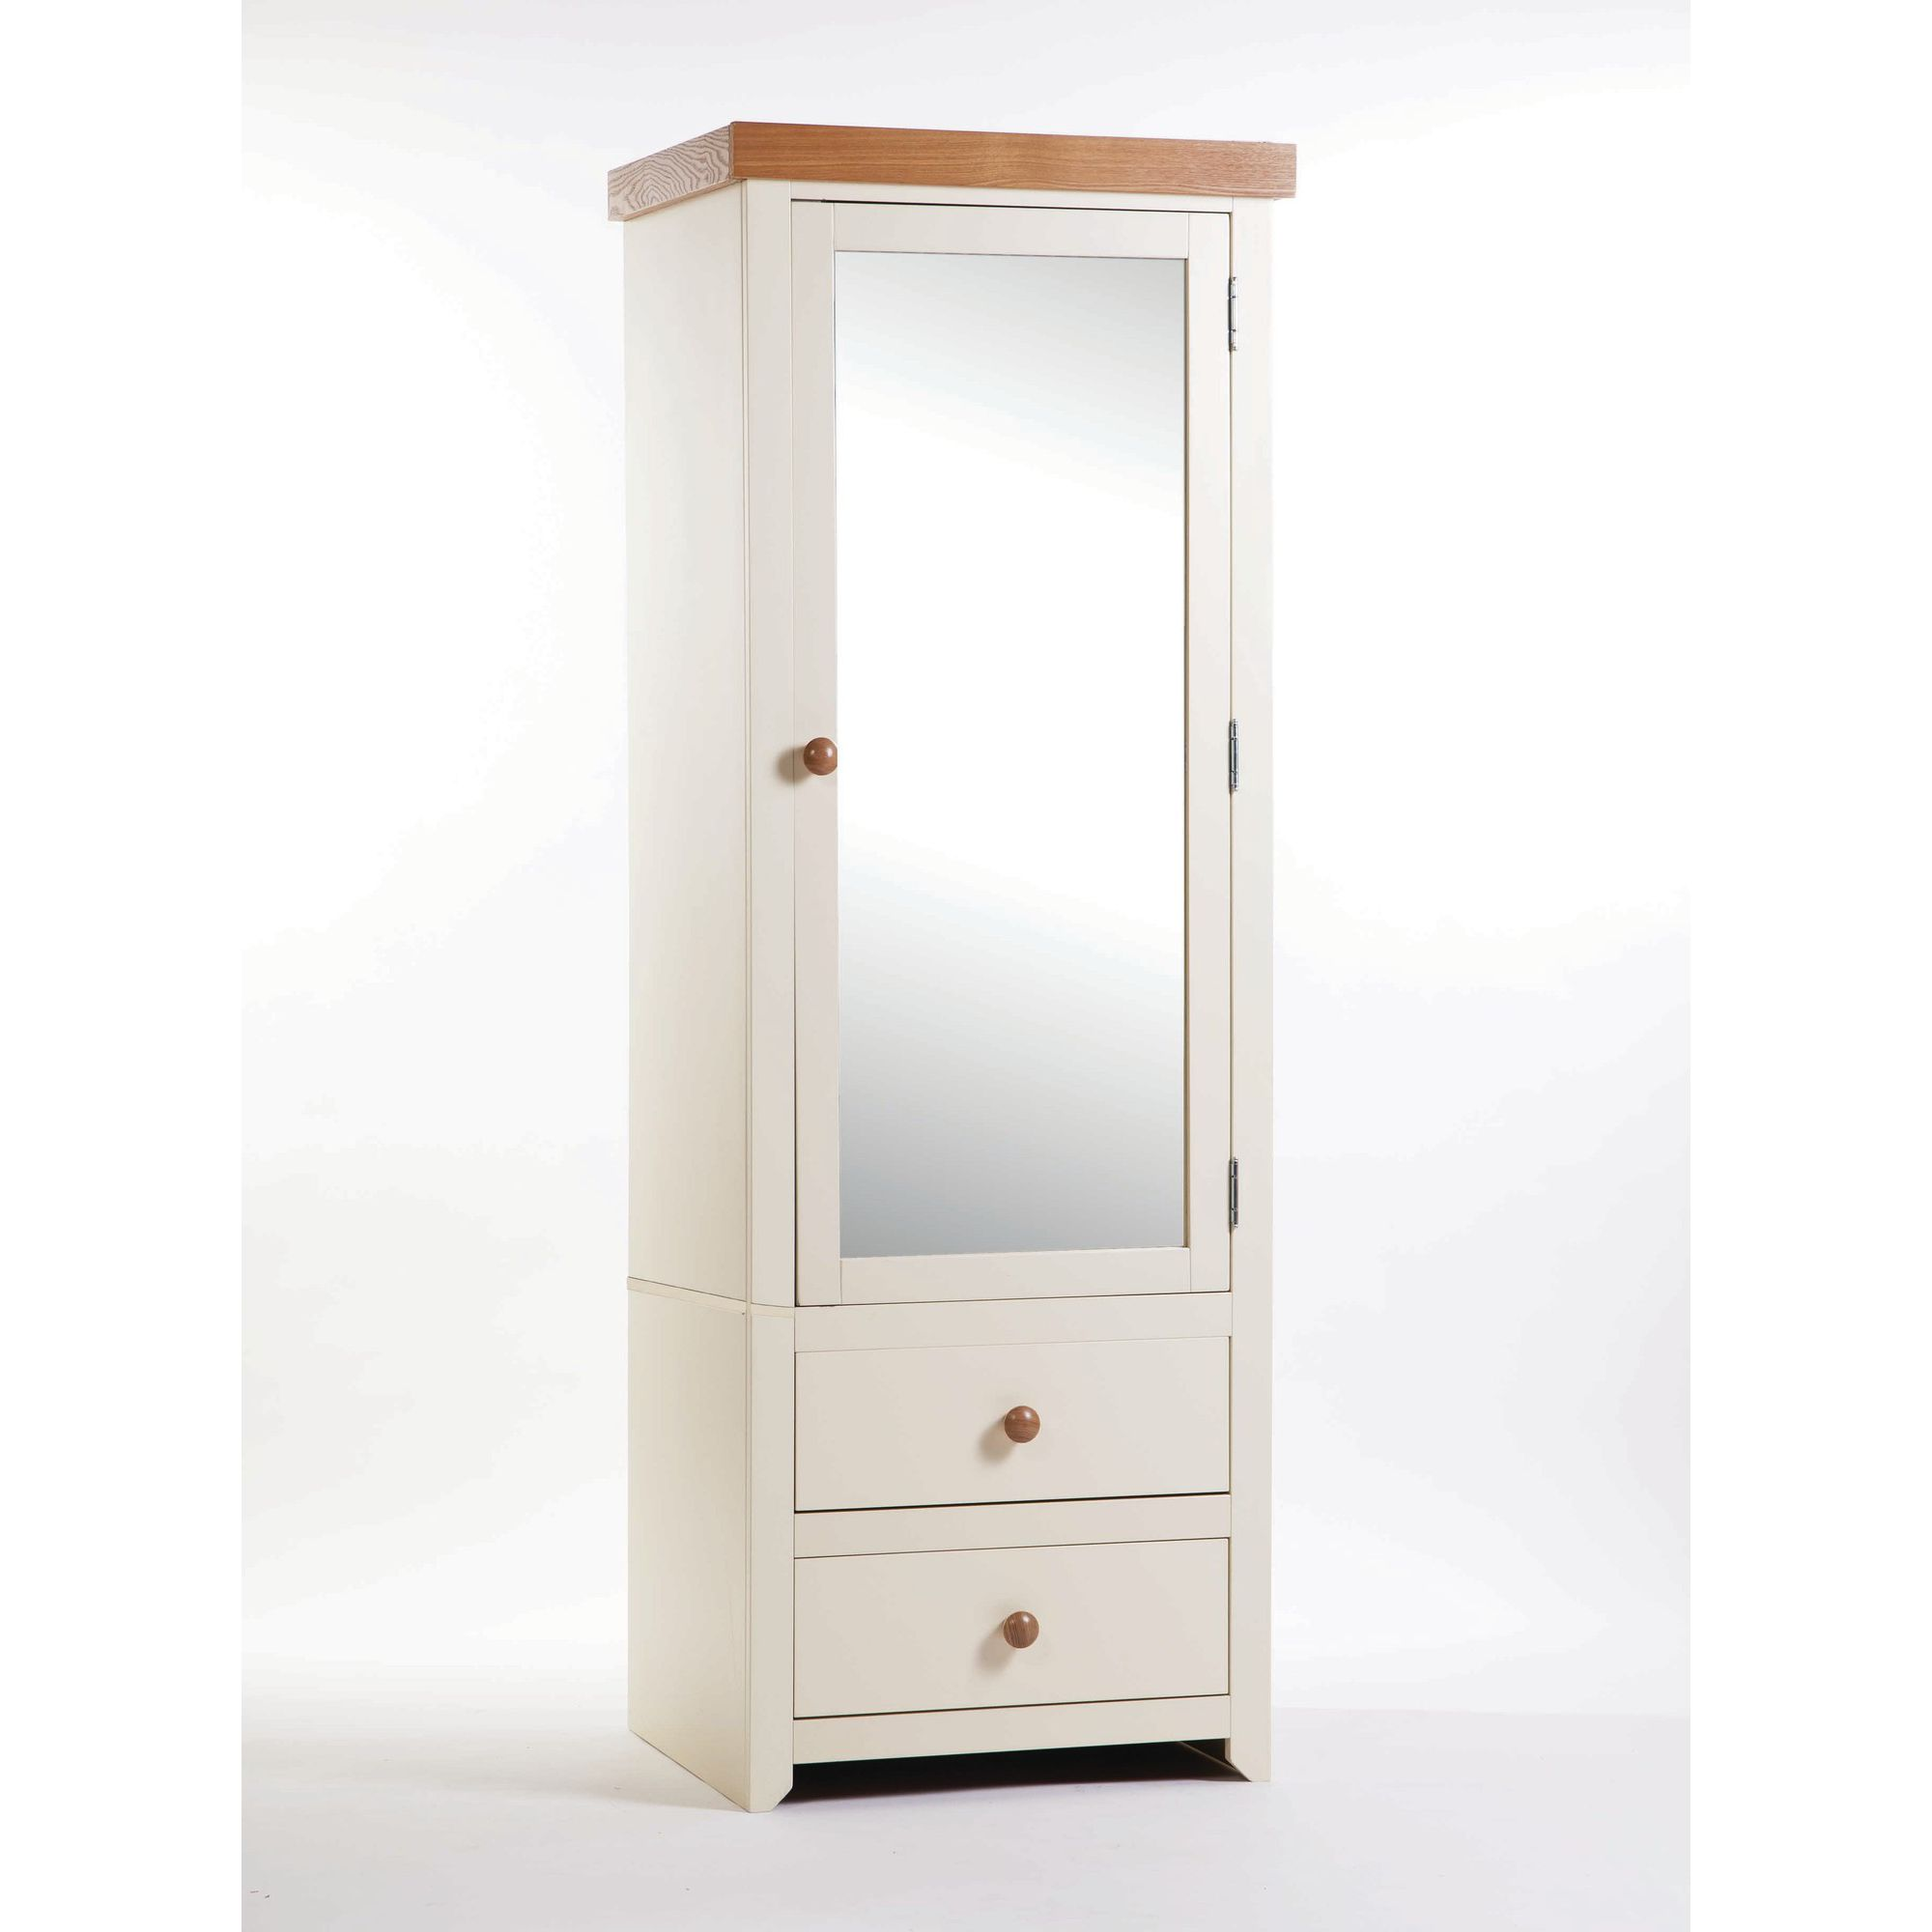 Home Essence Jamestown 1 Mirrored Door with 2 Drawer Wardrobe at Tesco Direct